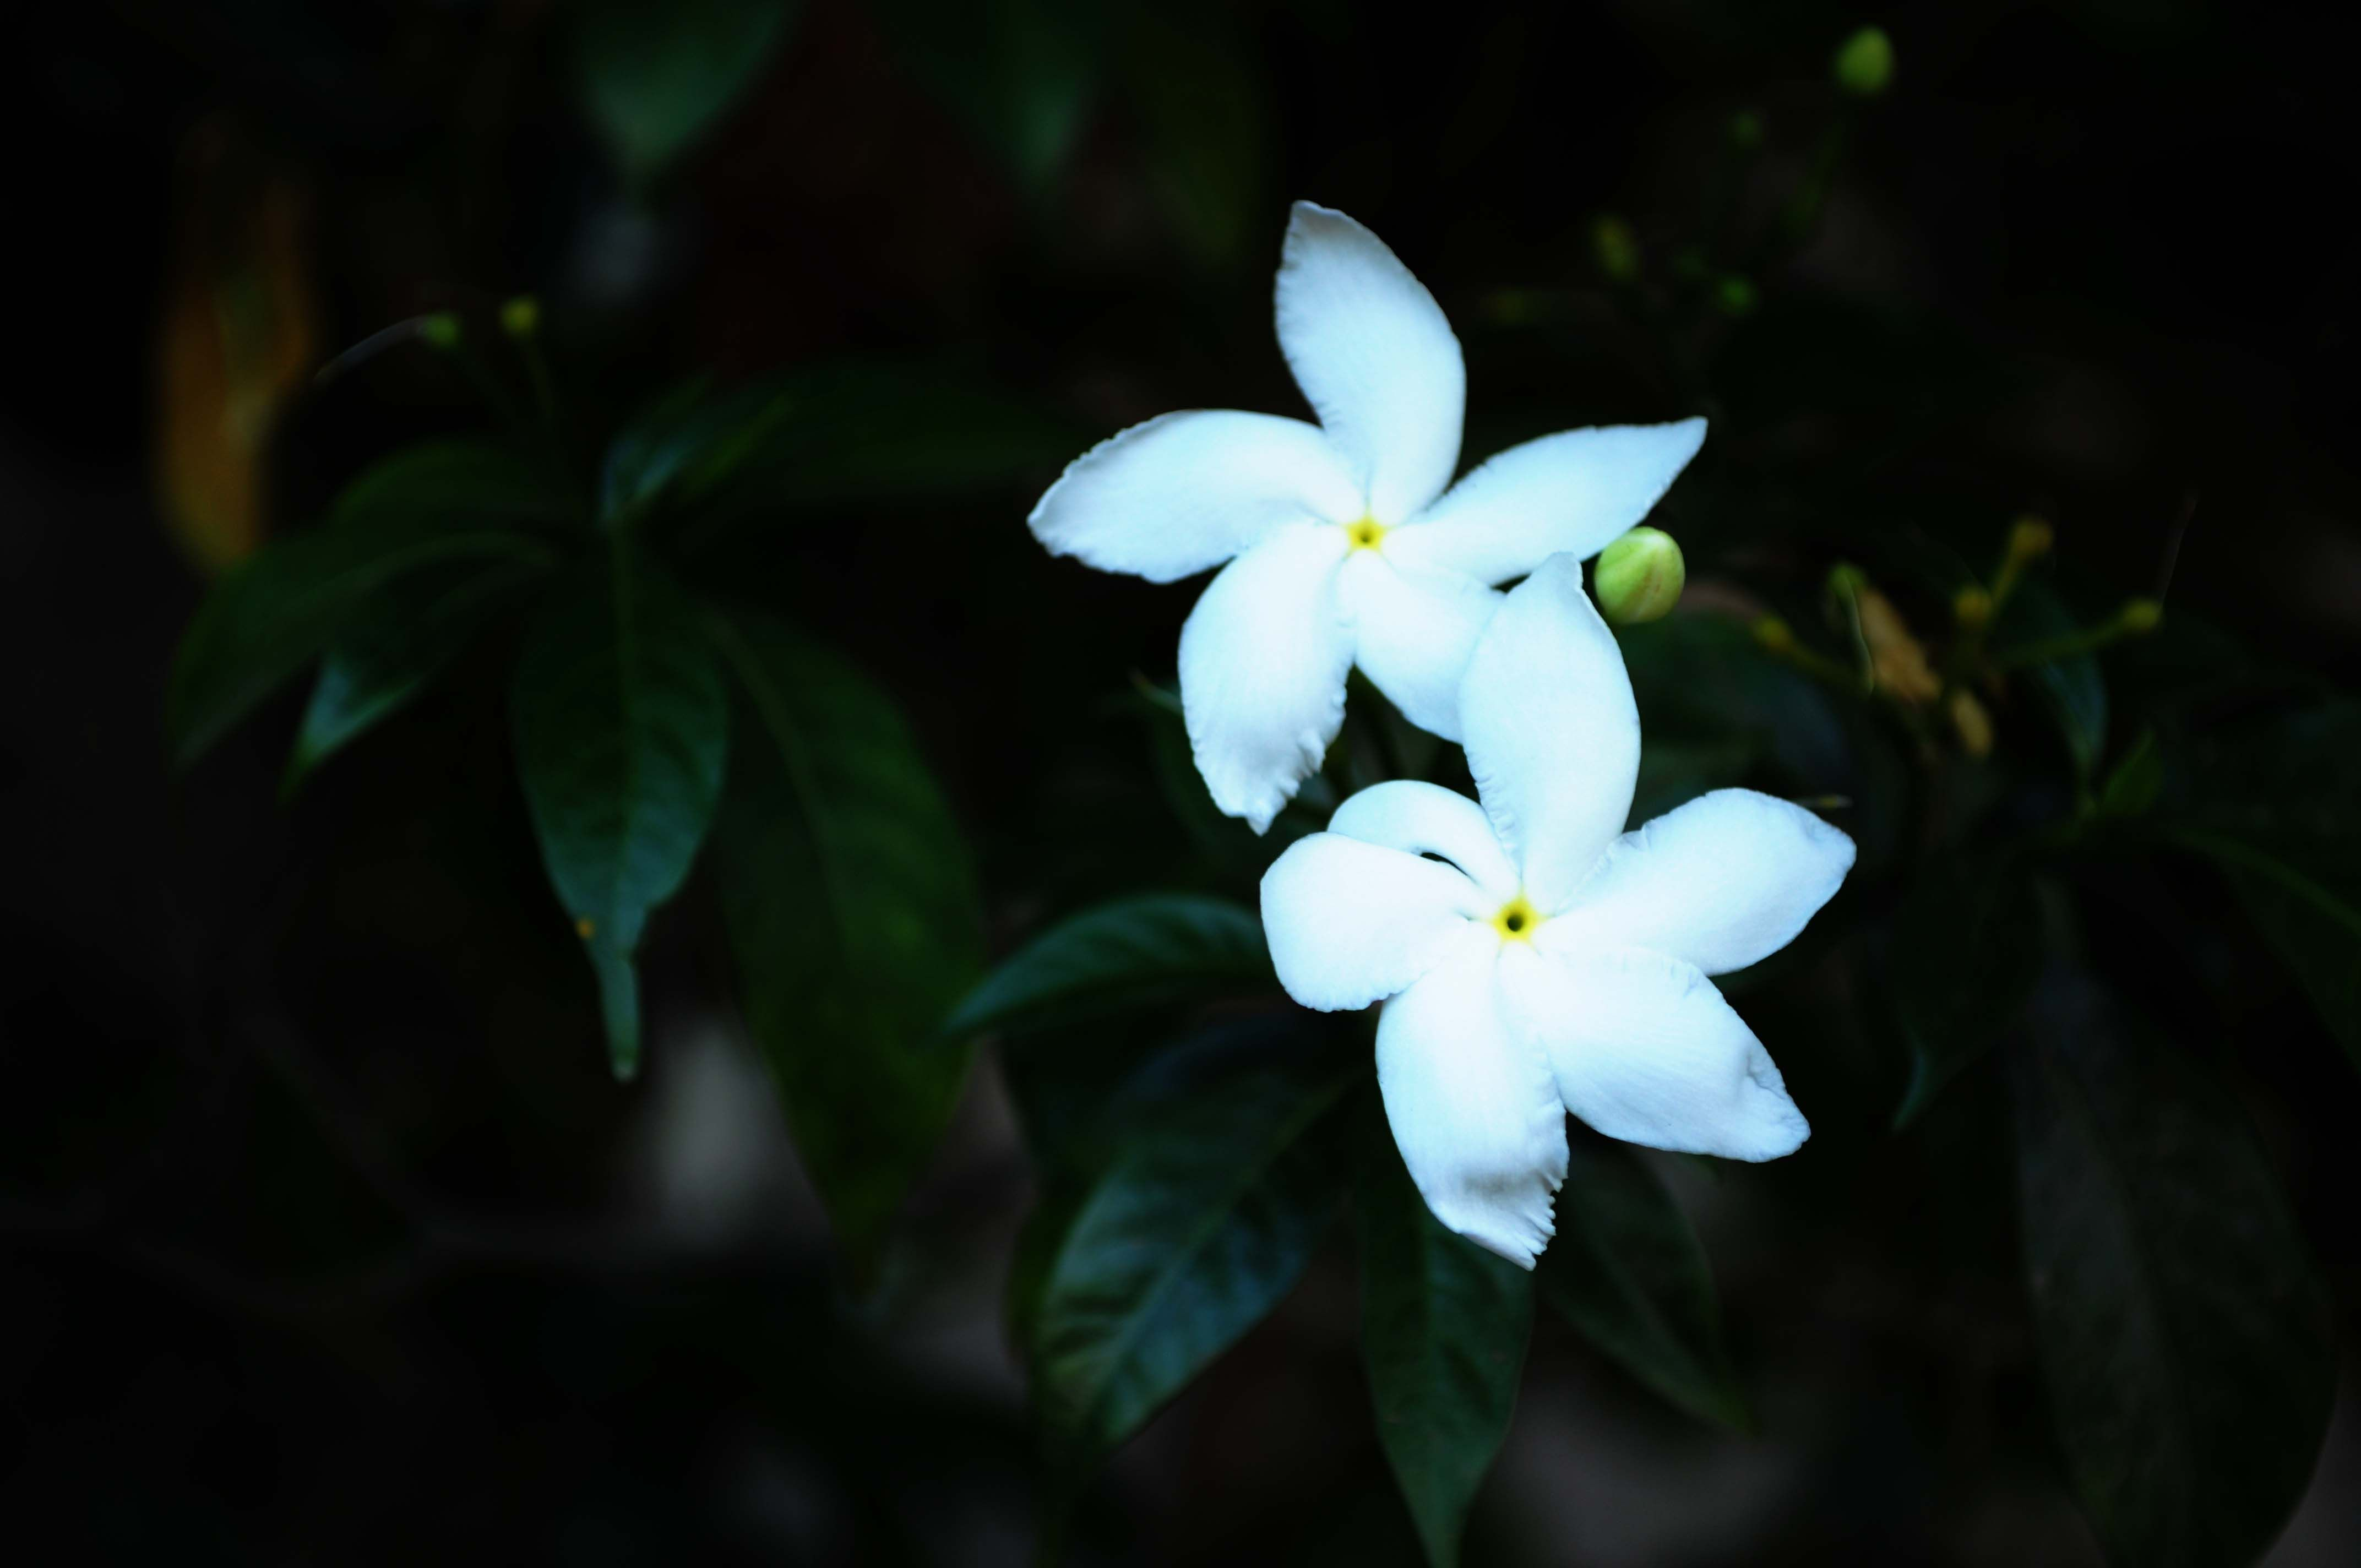 Nandiarvattom or crepe jasmine or carnation of india nandiarvattom or crepe jasmine or carnation of india tabeamaemontana diverticata family apocyanaceae is a small shrub that produces white fragrant flowers izmirmasajfo Gallery